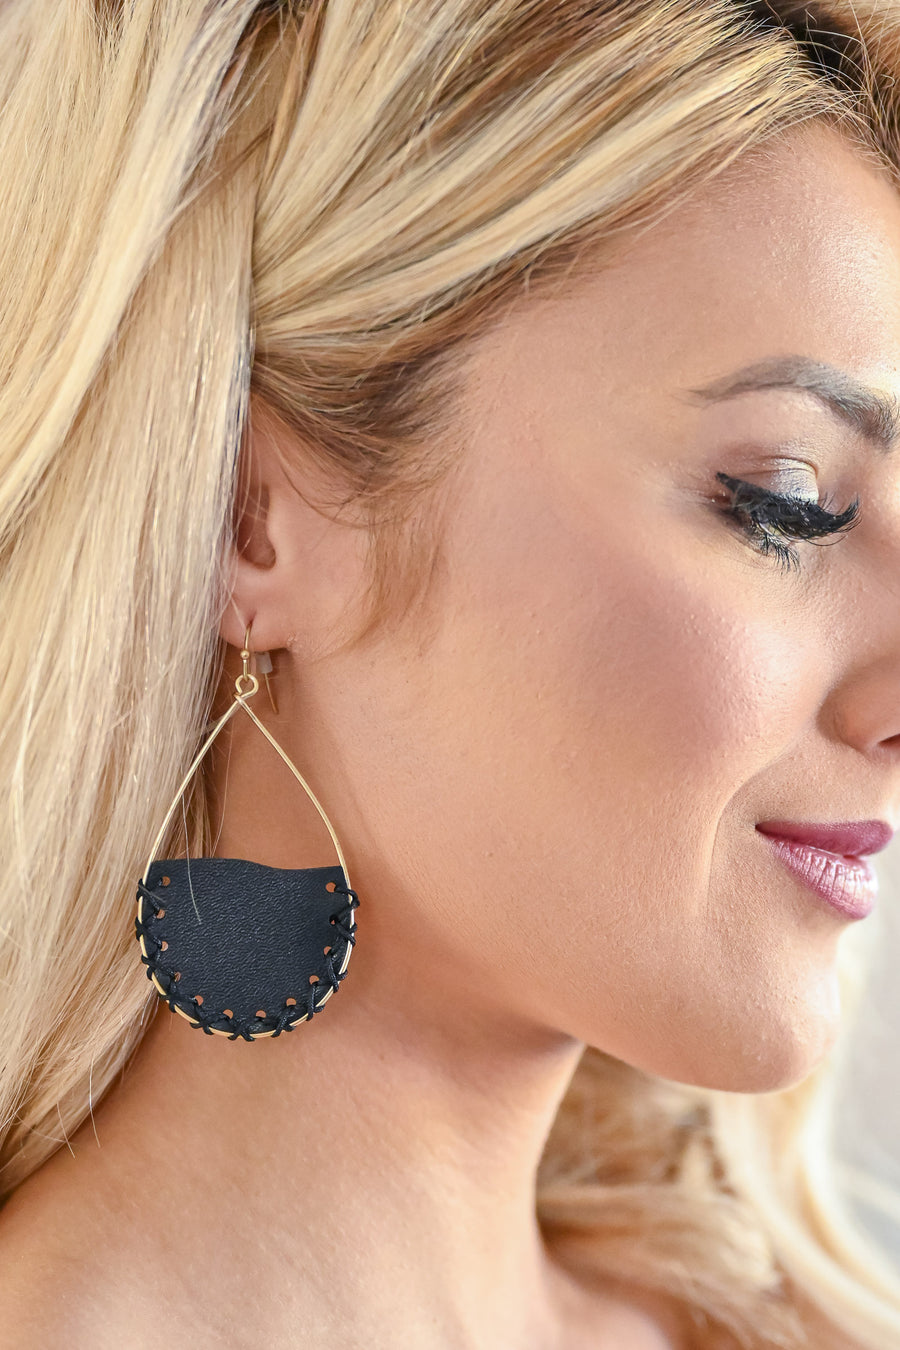 Carry On Teardrop Earrings - Black women trendy vegan leather teardrop earrings stitching detail closet candy side